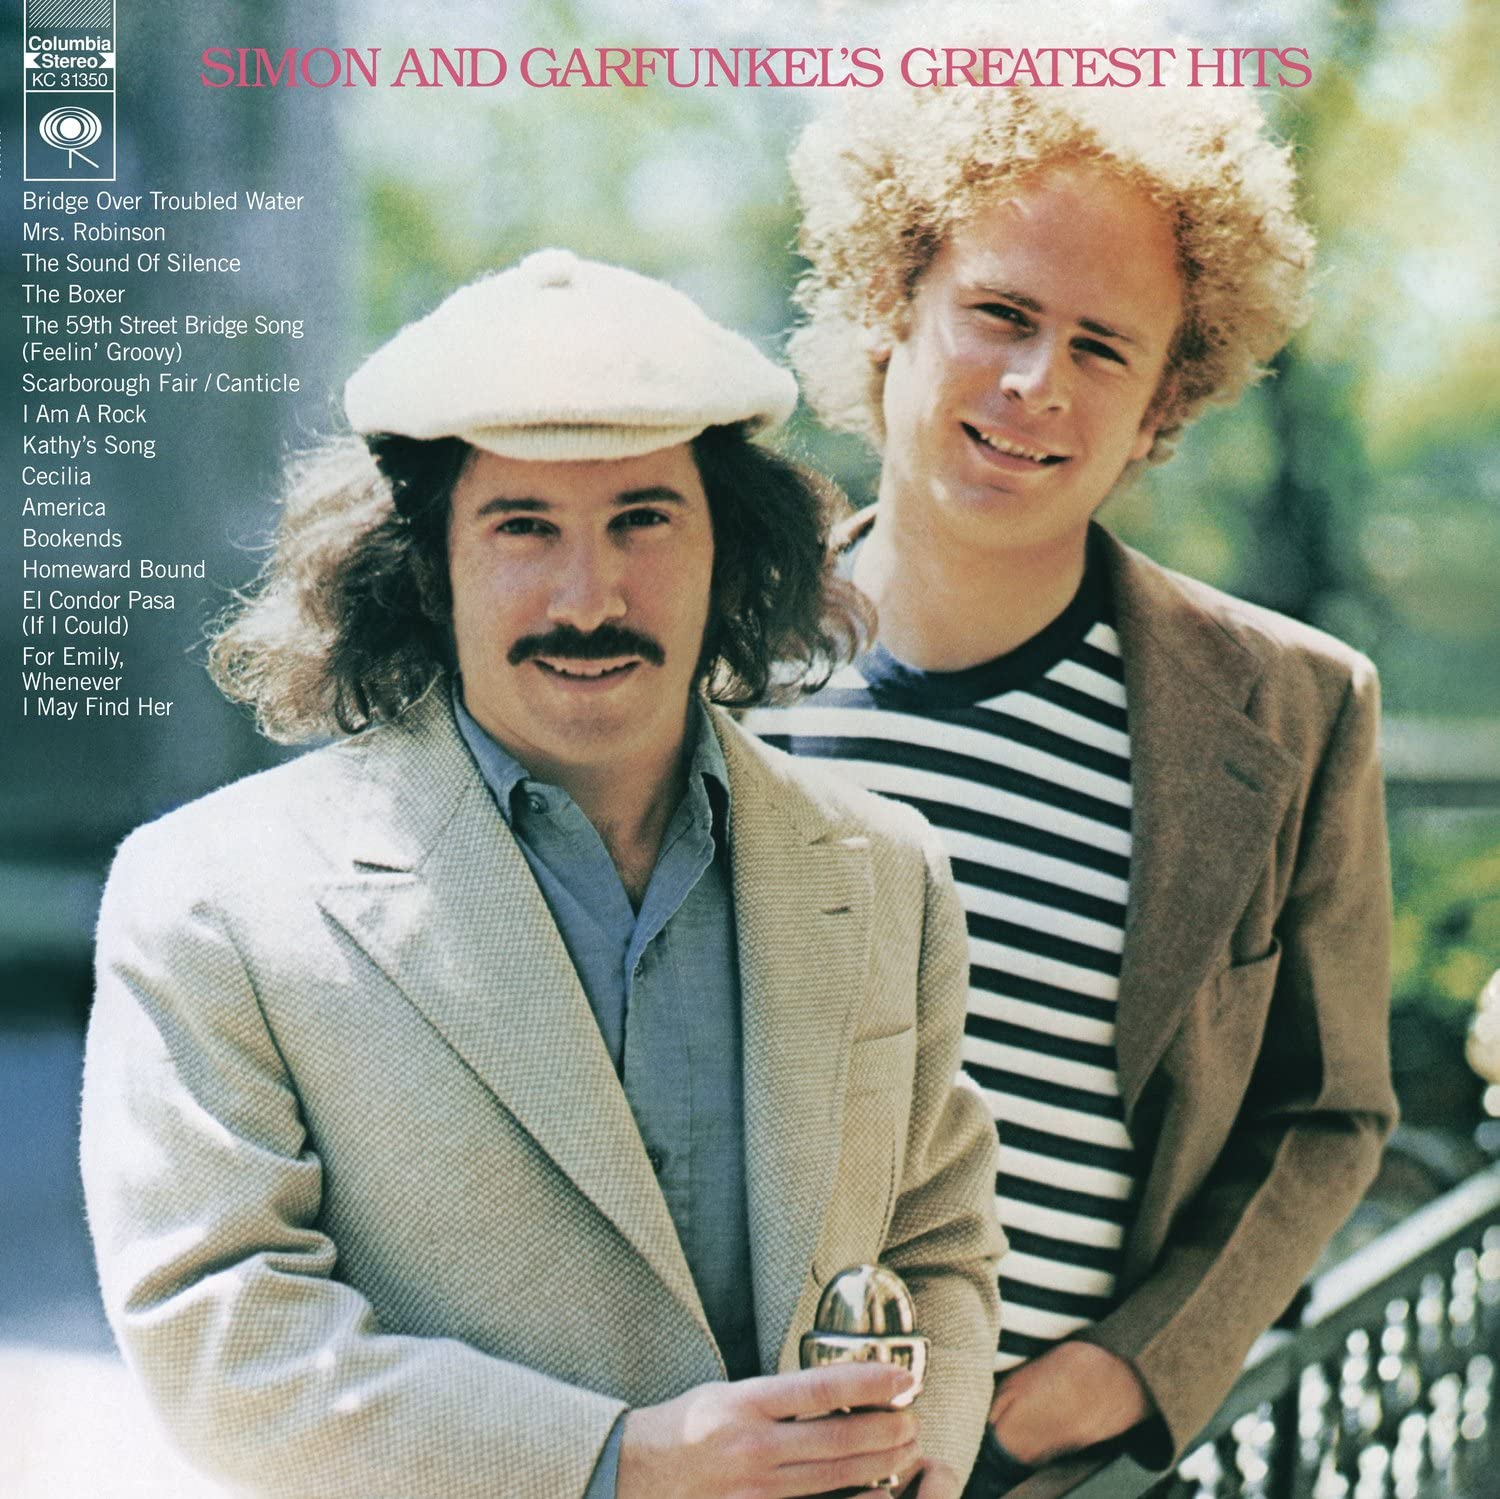 Simon & Garfunkel/Greatest Hits [LP]